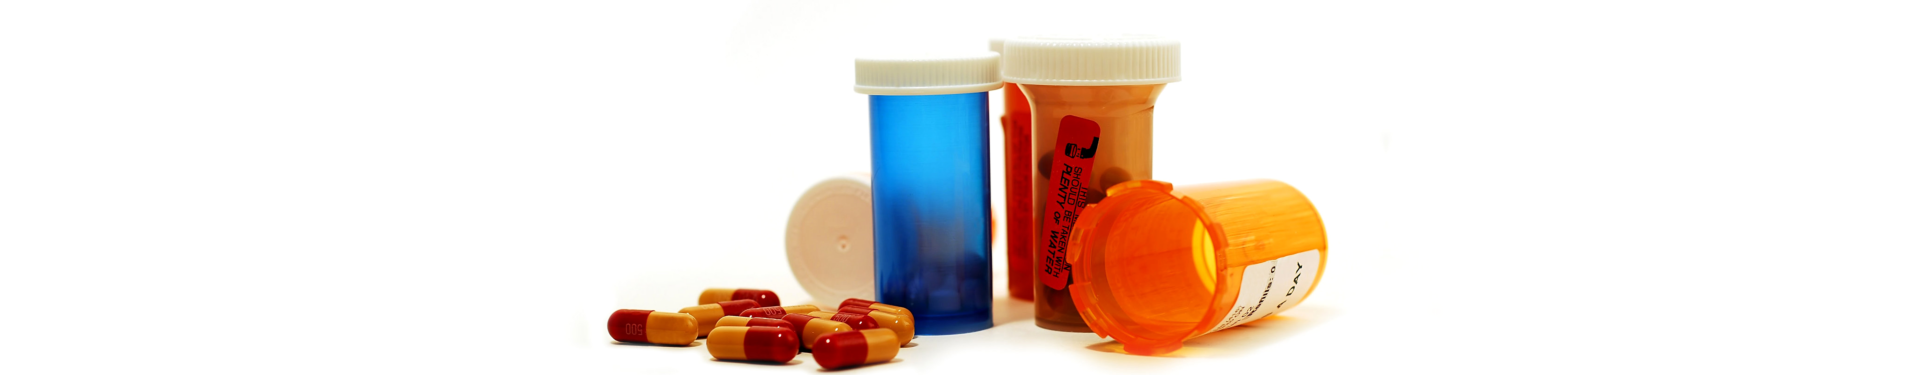 medicines in a container